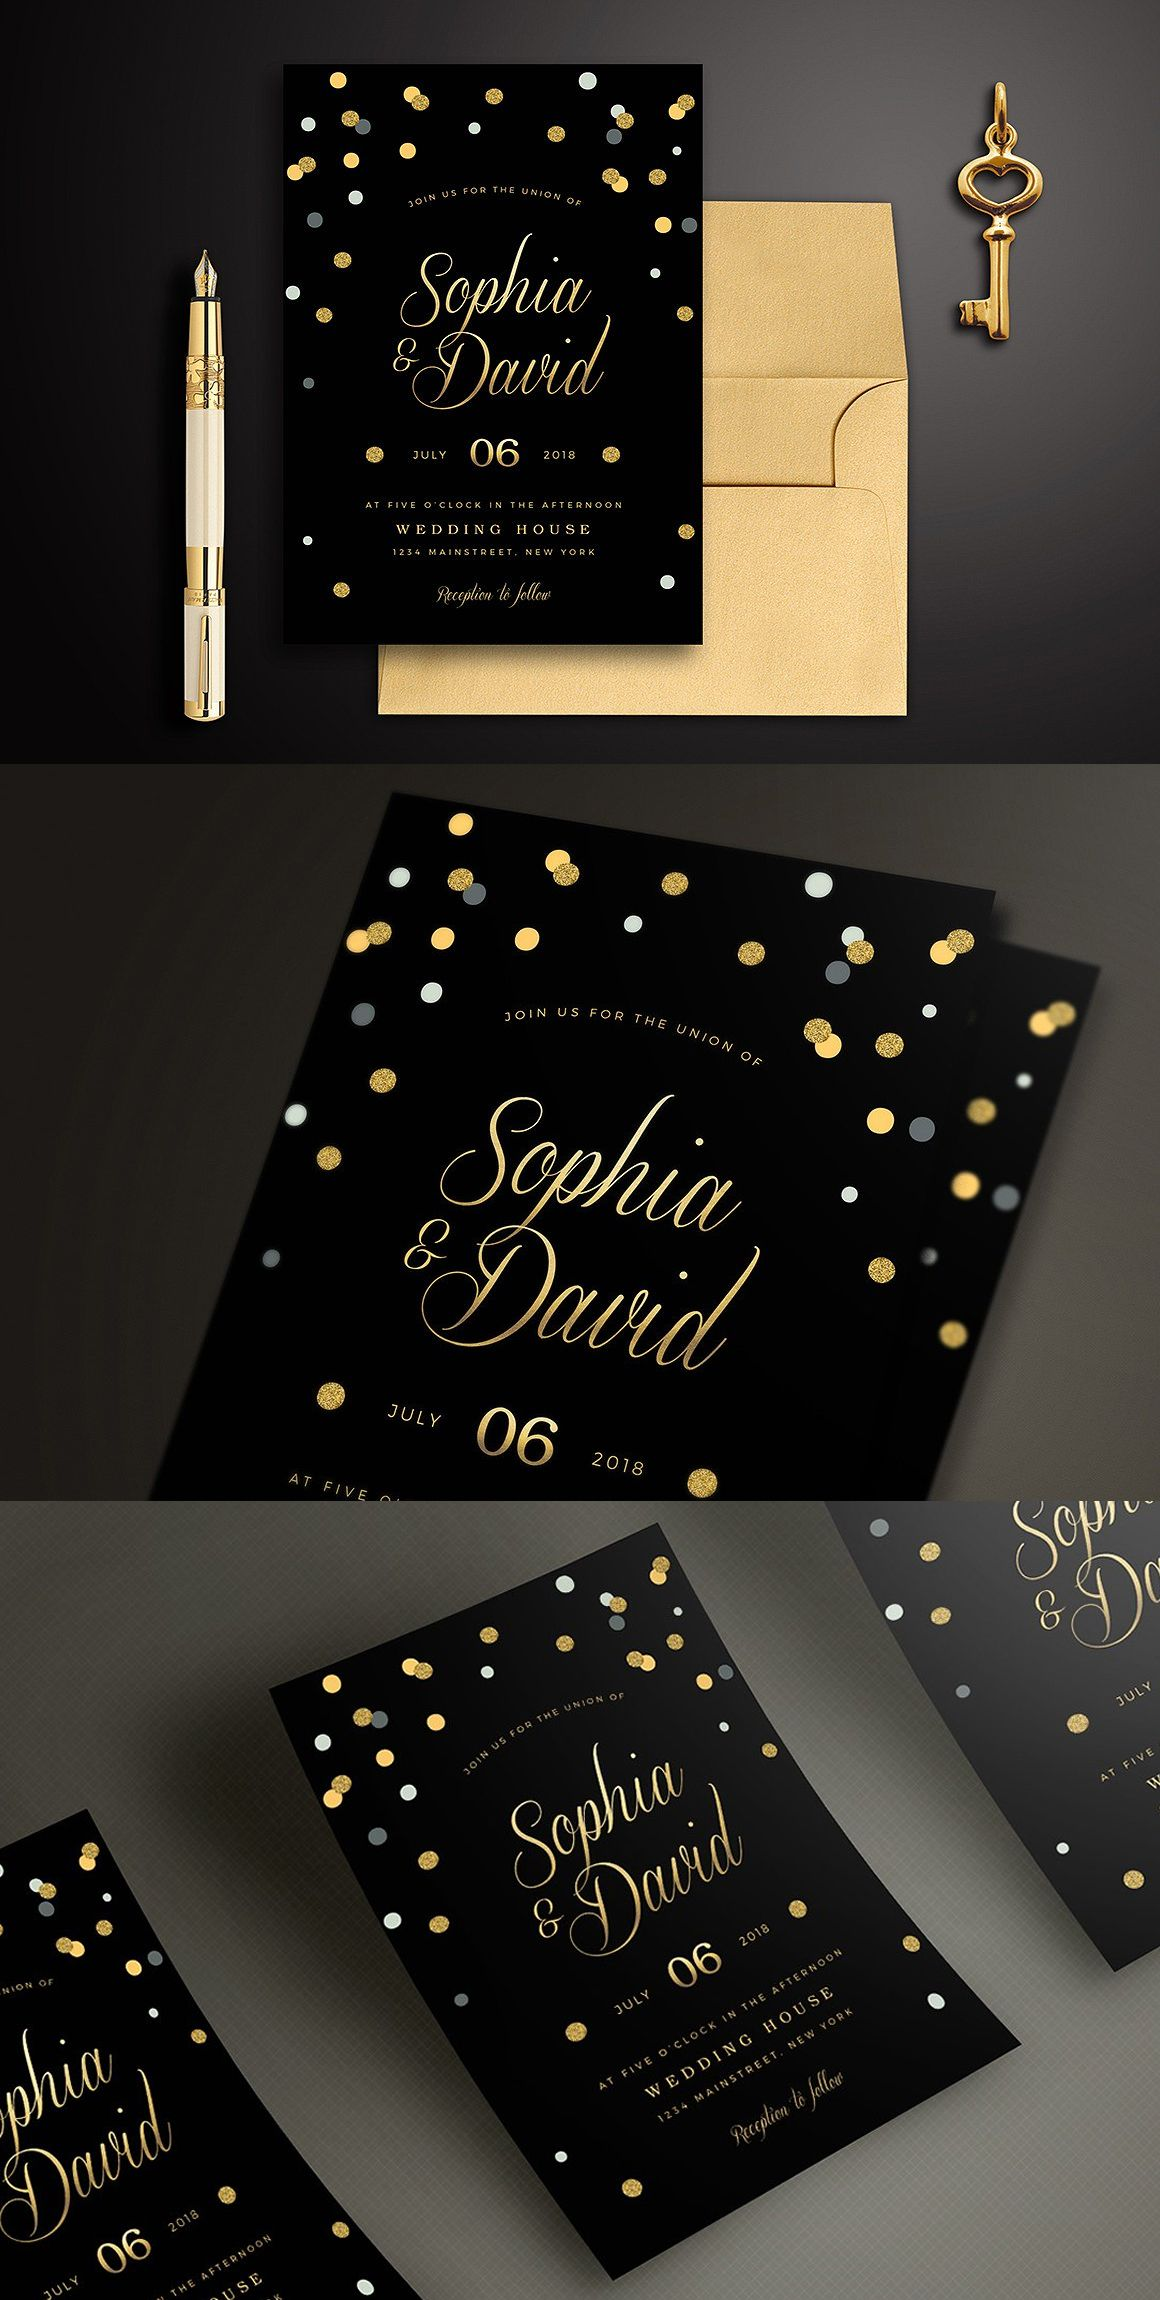 Black Gold Wedding Invitation Gold Wedding Invitations Wedding Invitation Cards Wedding Invitation Card Design